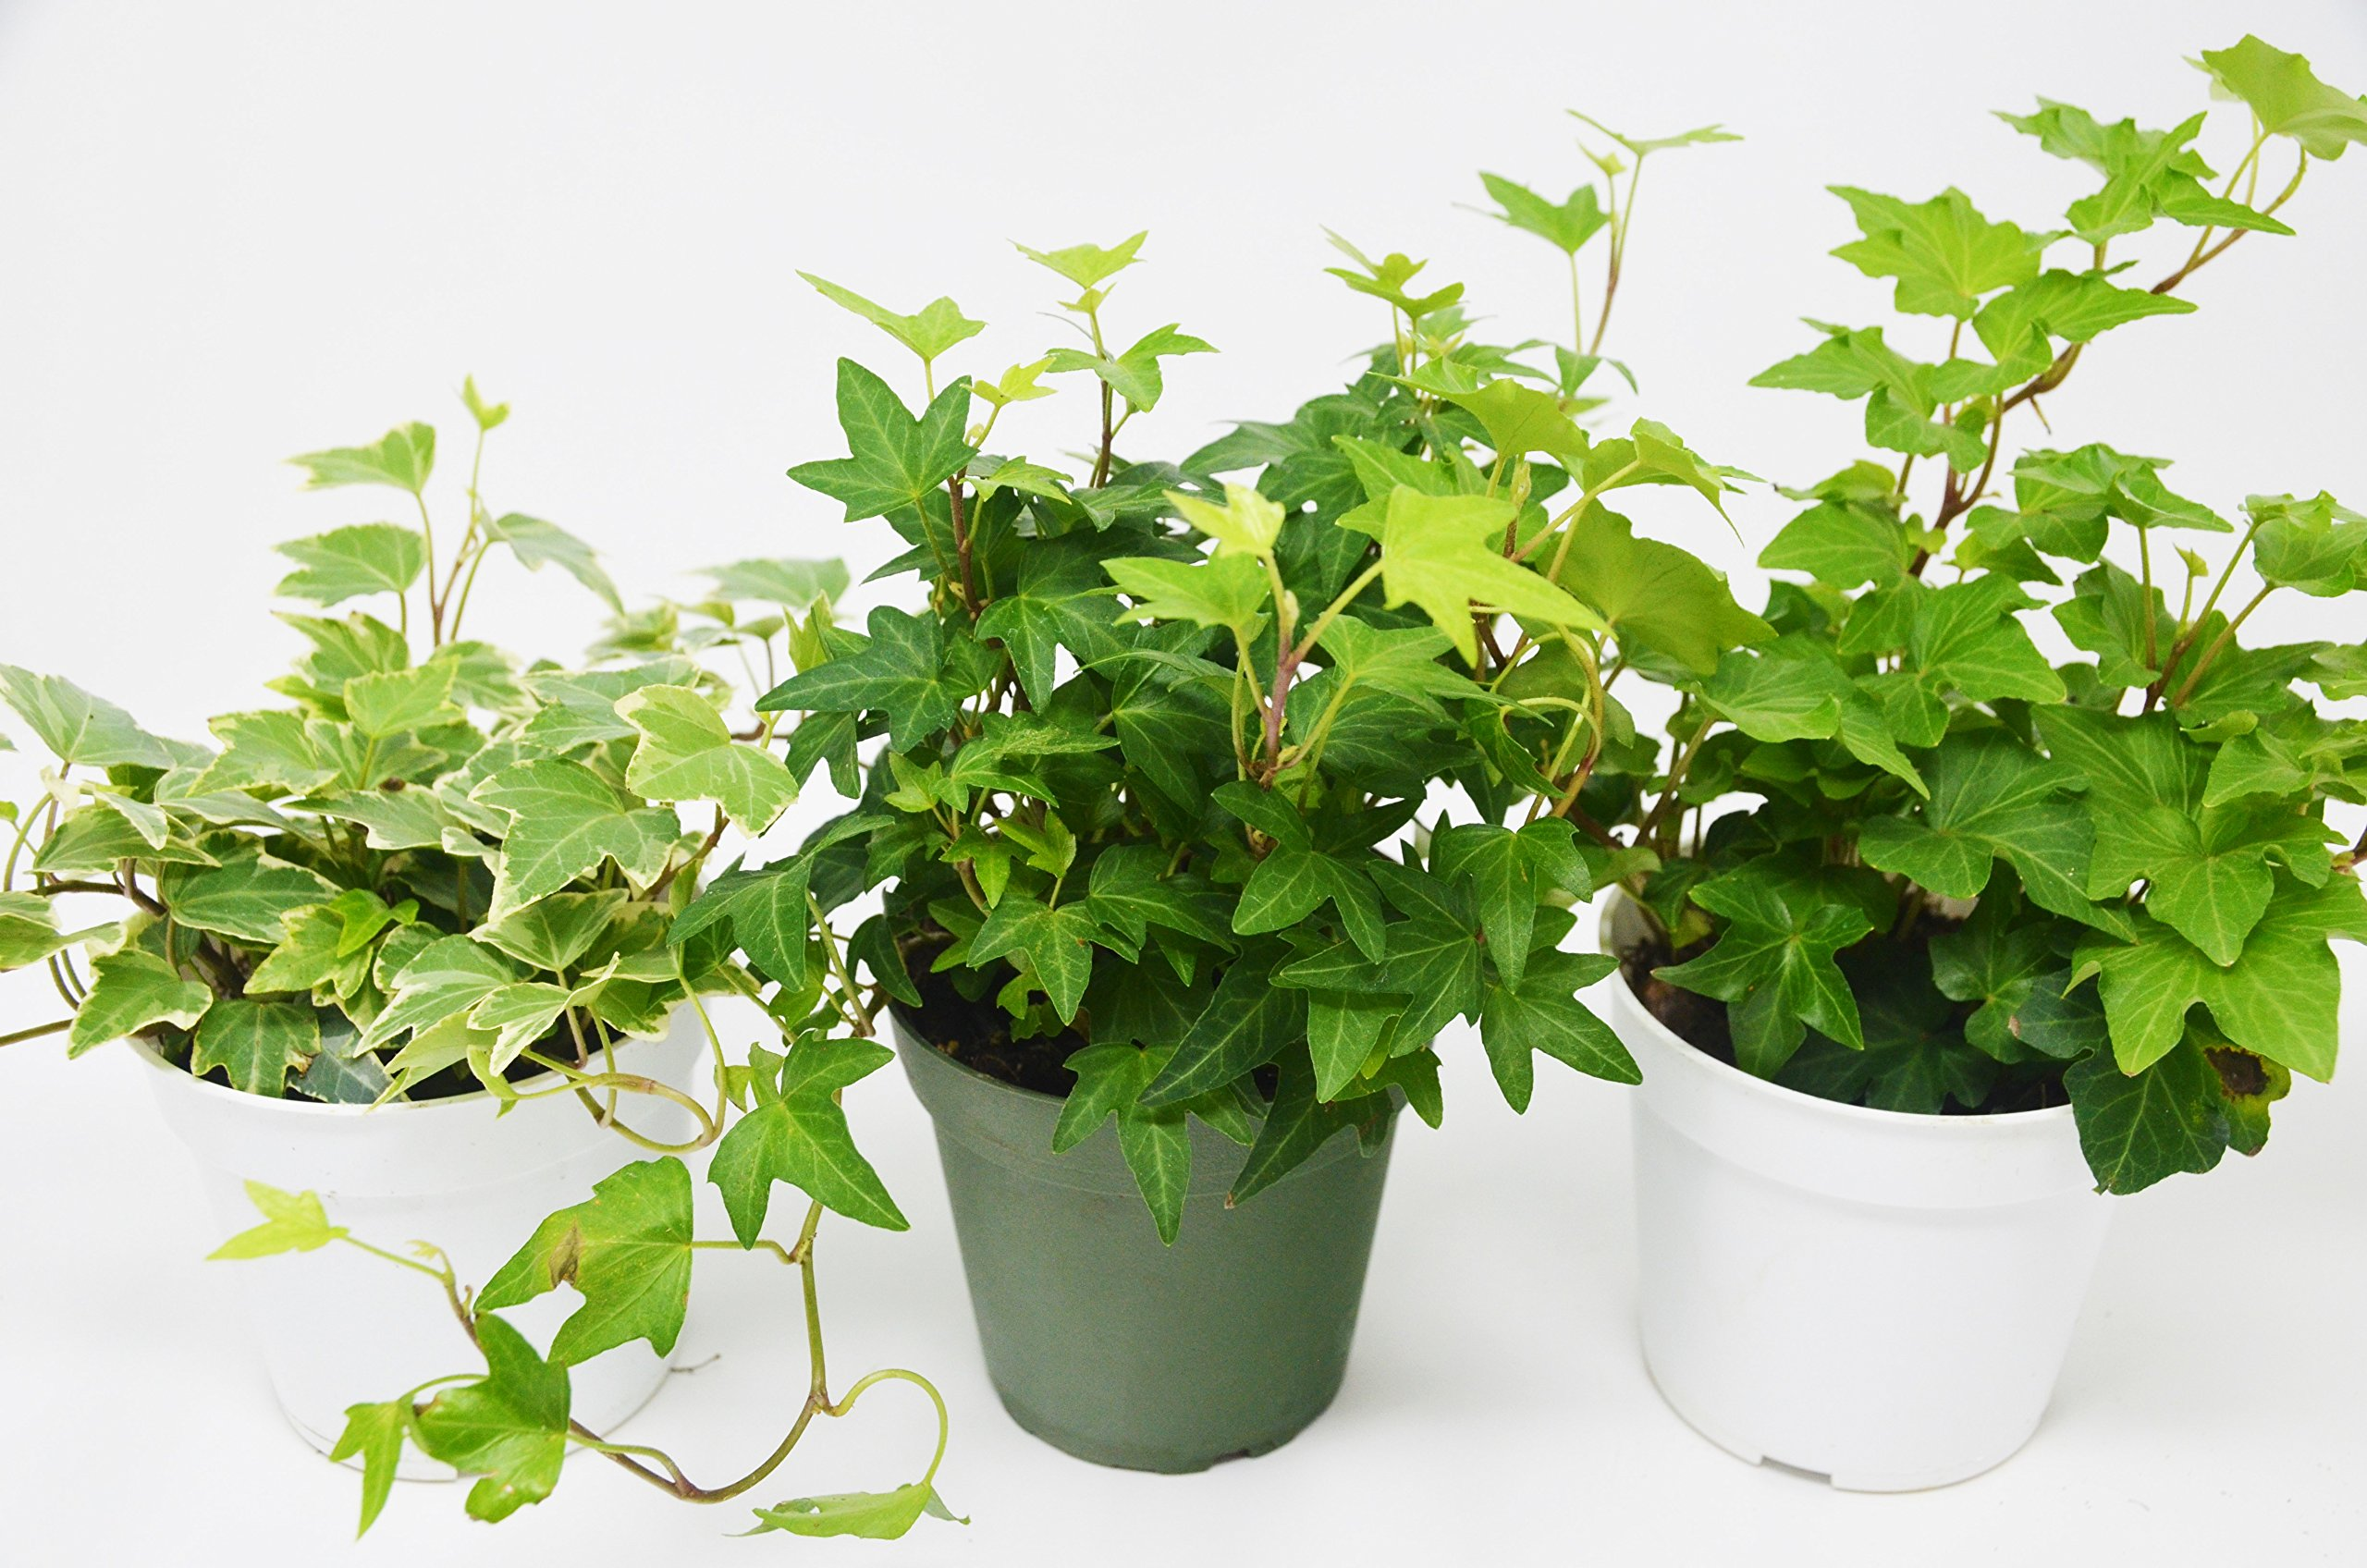 3 Different English Ivy plants- Live House Plant - FREE Care Guide - 4'' Pot - Ground Cover -